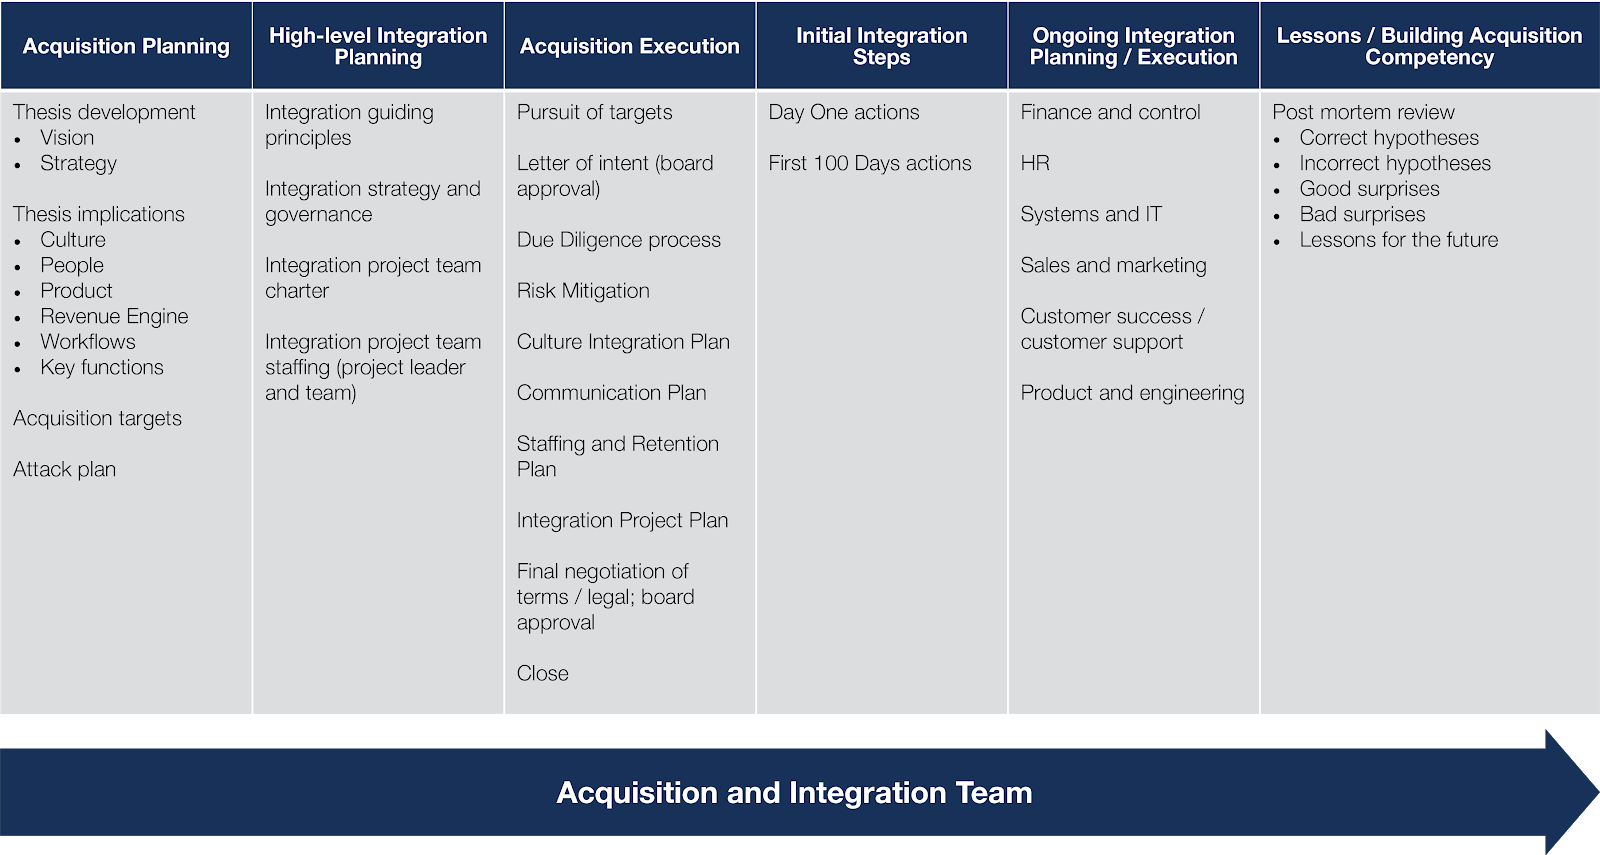 Tejas Oza In His Presentation Post Acquisition Integration Framework Offers An Organizational Structure For The Team